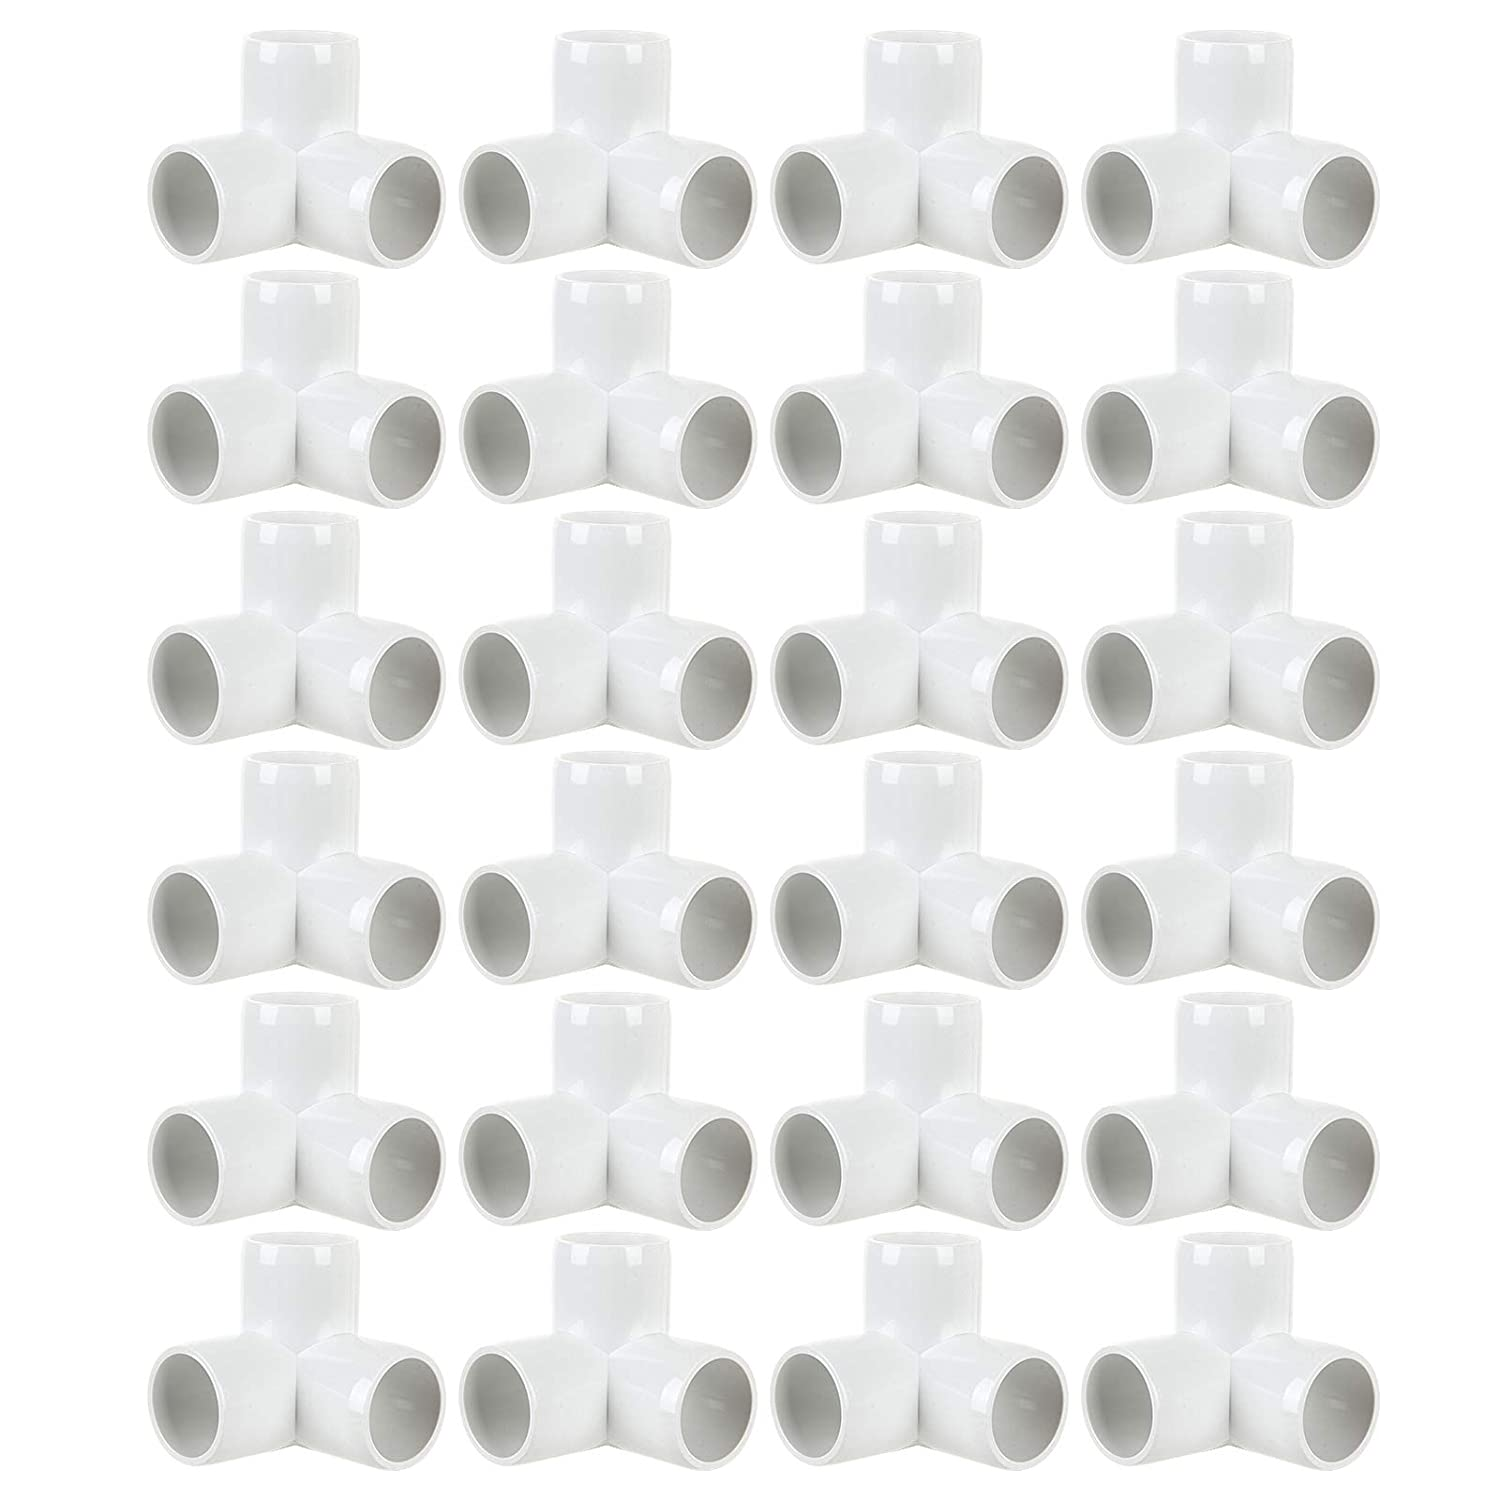 24Pack PVC Elbow Fittings, 3/4 Inch 3 Way PVC Pipe Fitting connectors for SCH40 PVC Pipe, PVC Pipe Tee Corner Fitting- Build Heavy Duty PVC Furniture,3 Way PVC Pipe Joint